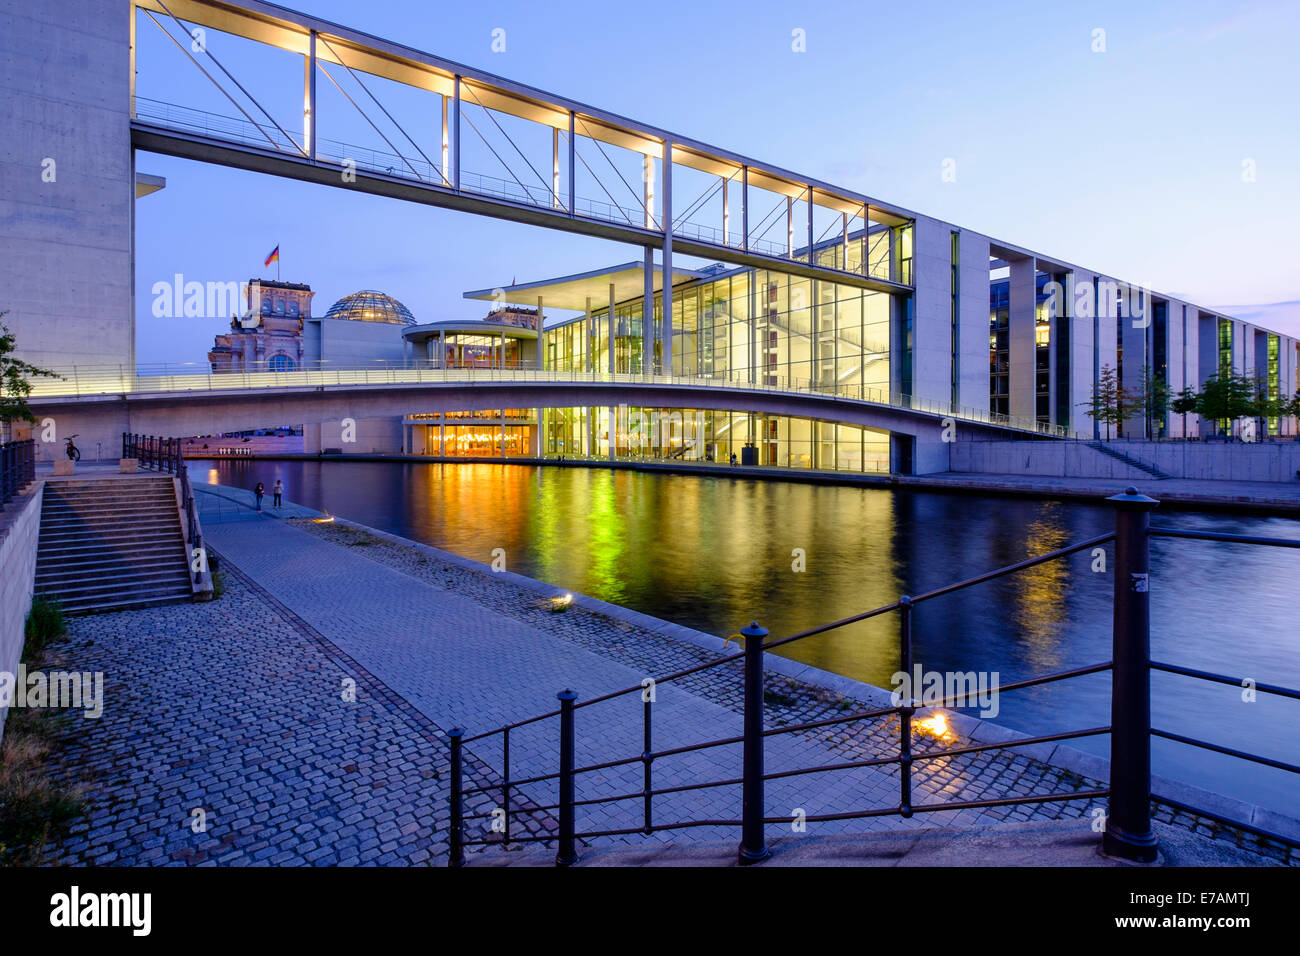 Government buildings Paul Loebe haus part of Bundestag at Regierungsviertel (Government District)  beside Spree - Stock Image